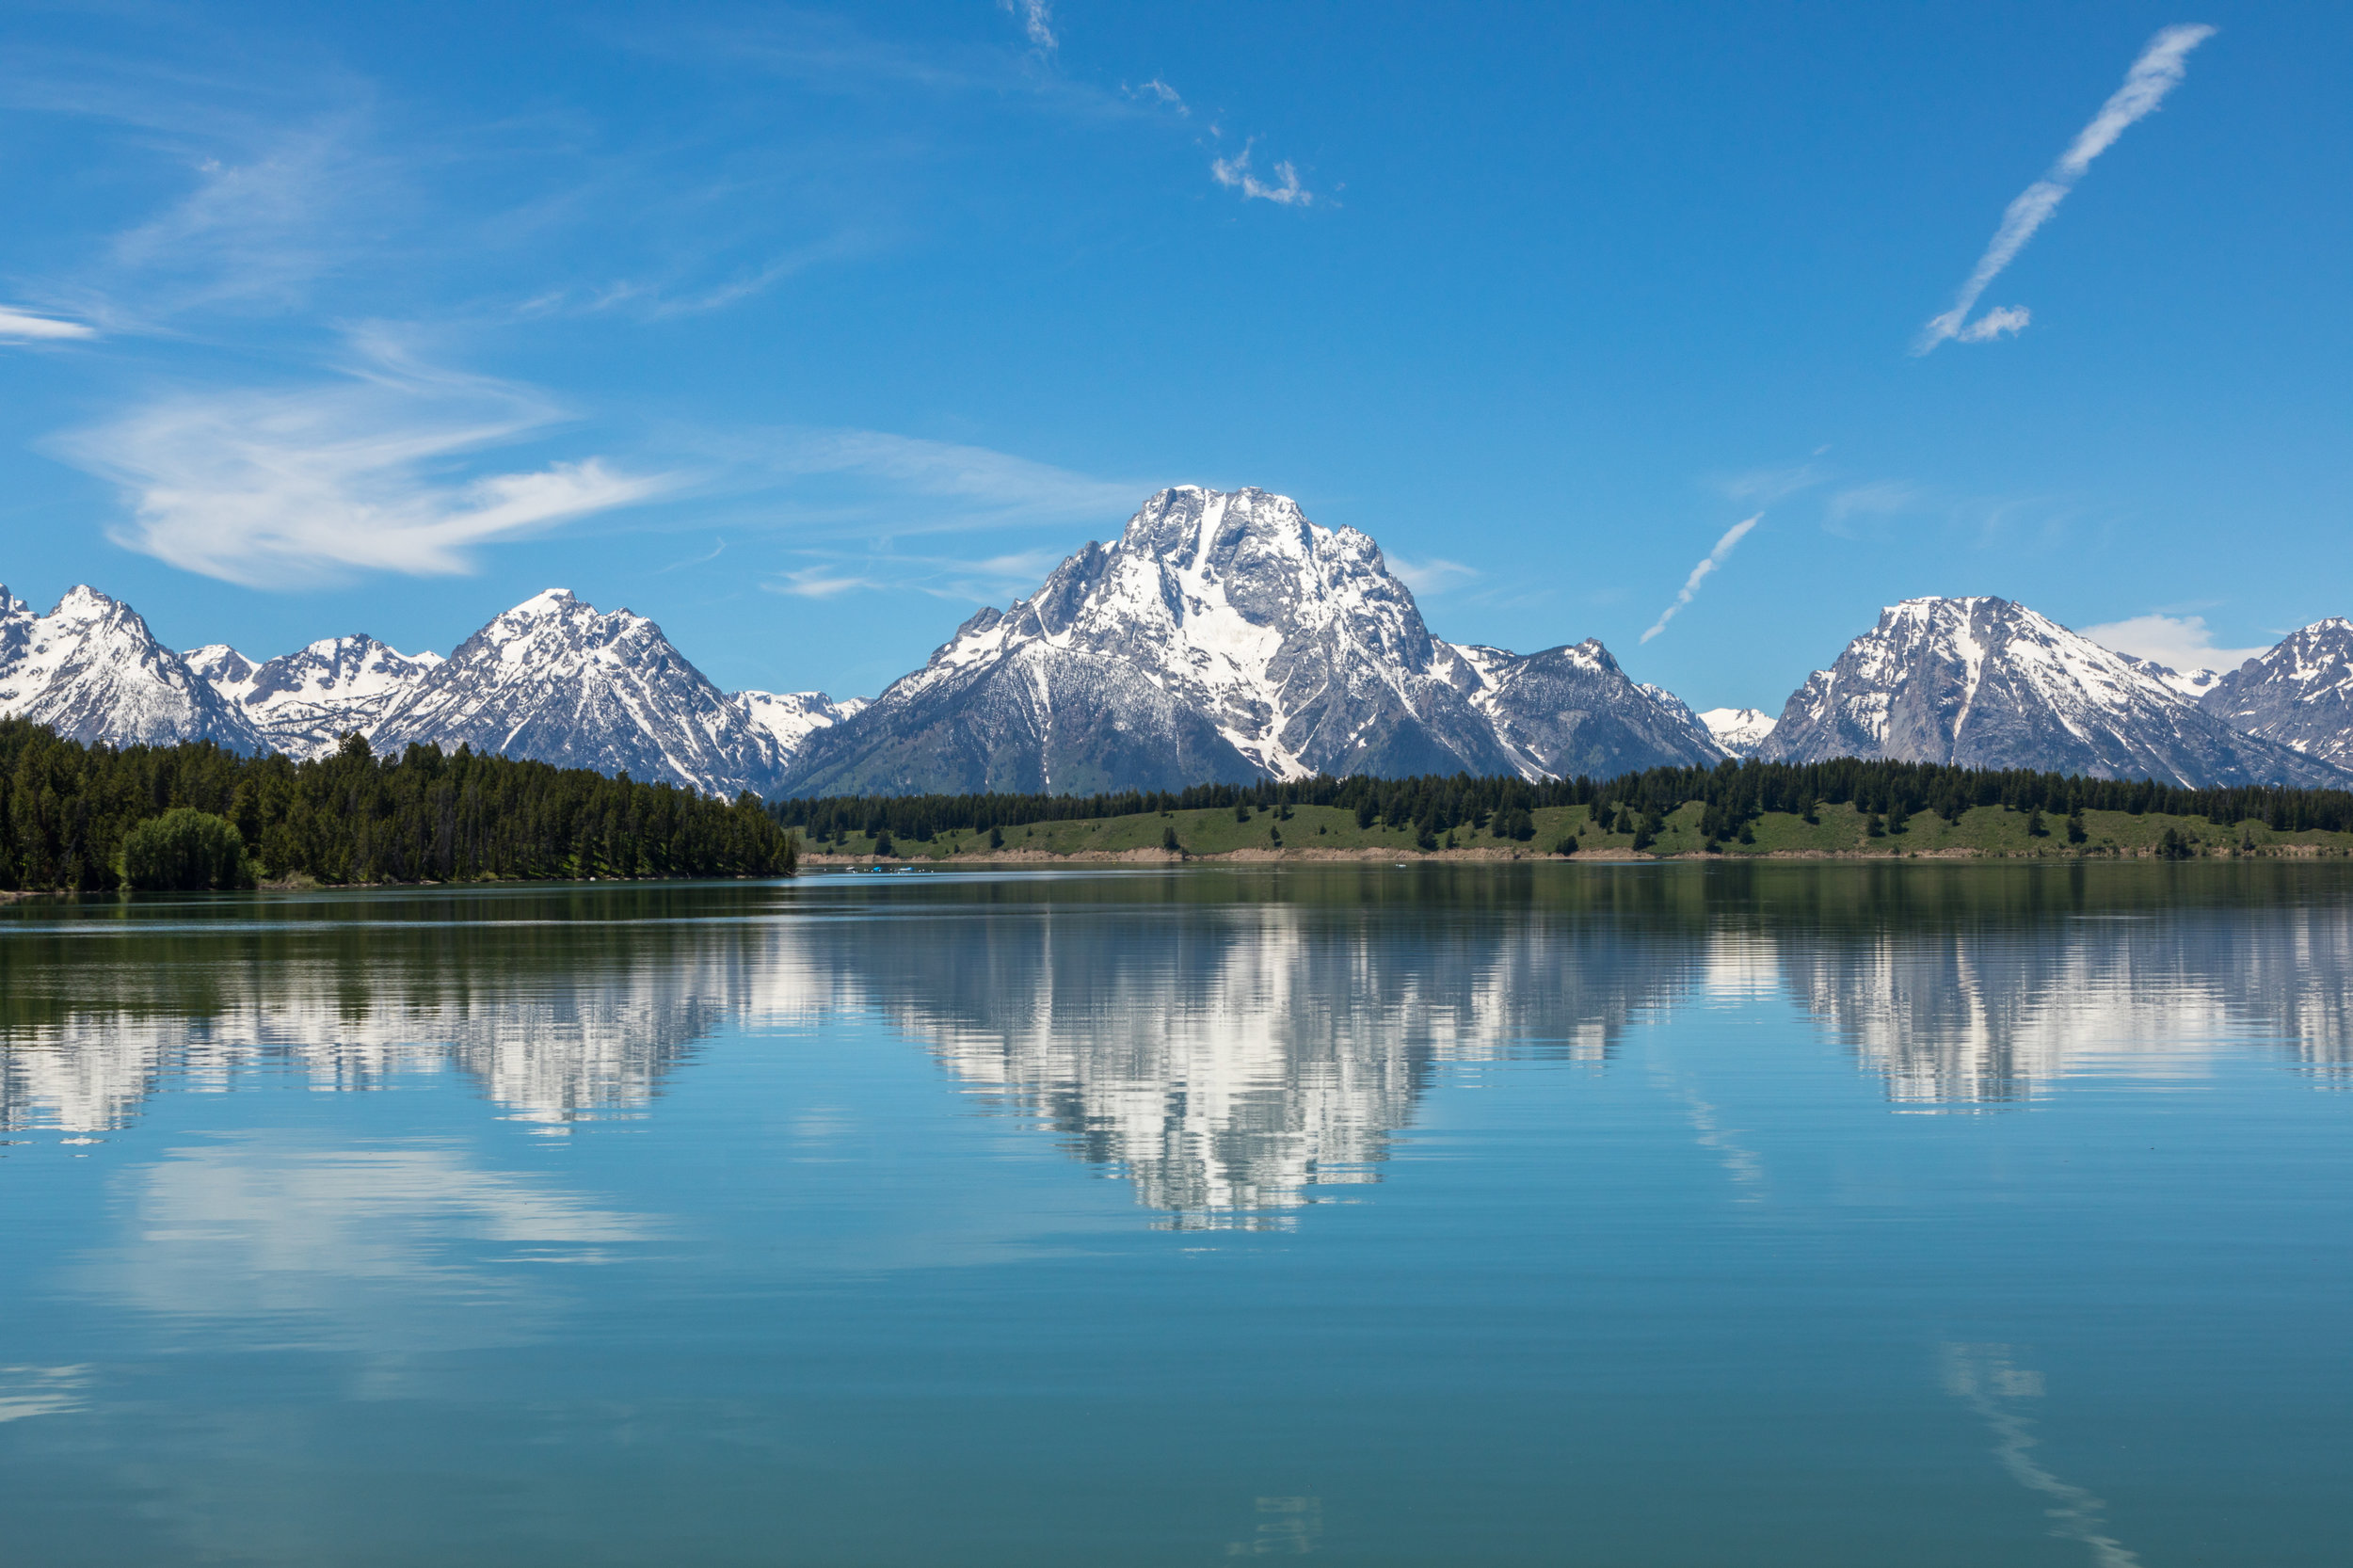 Reflection of Mount Moran in Jackson Lake, Image # 2517